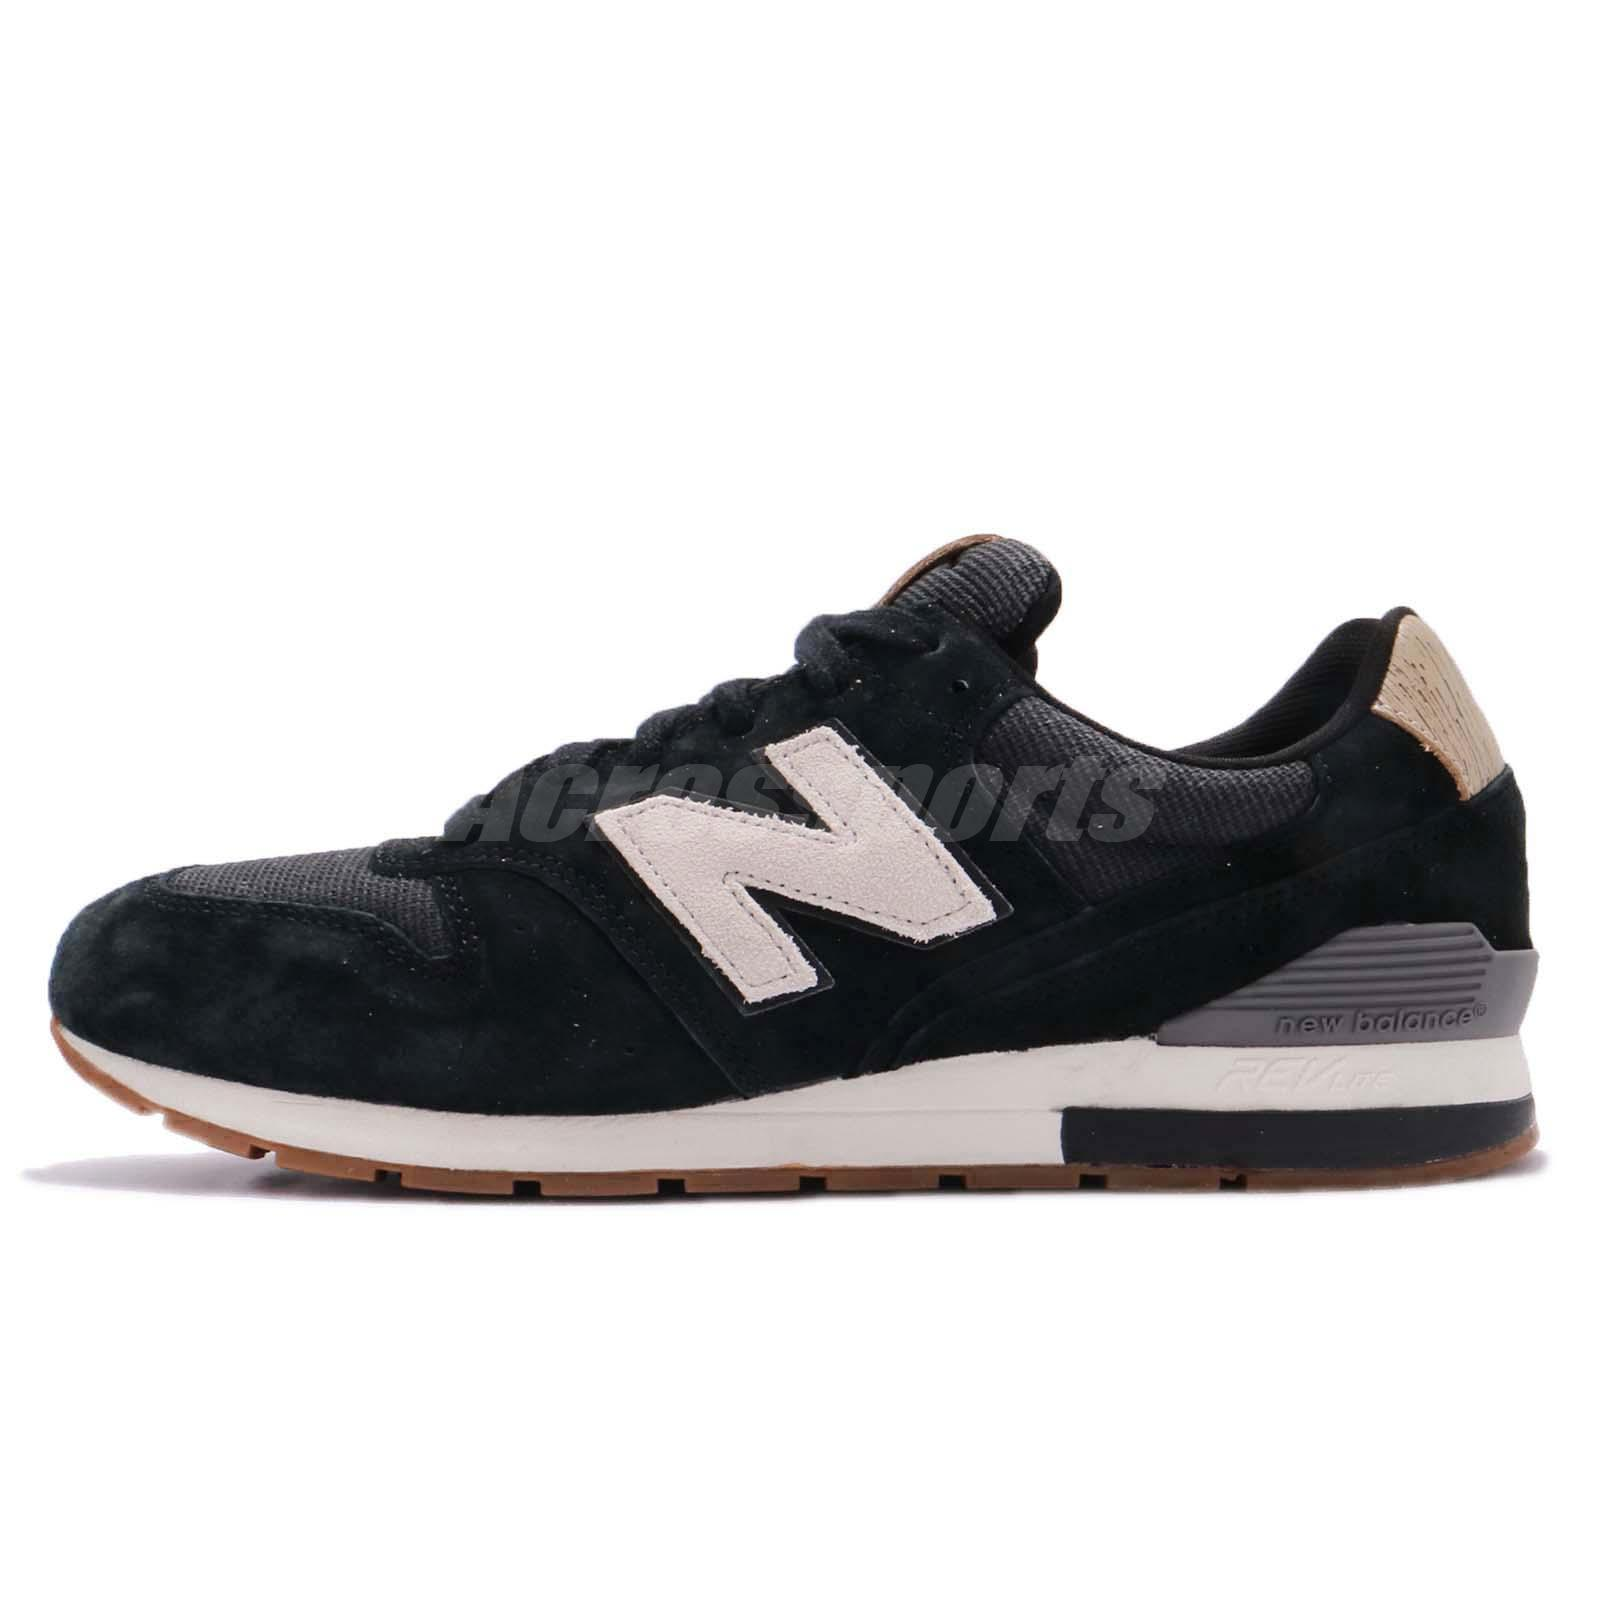 promo code 662bc bb806 Details about New Balance MRL996PA D 996 Black Grey Men Running Shoes  Sneakers MRL996PAD